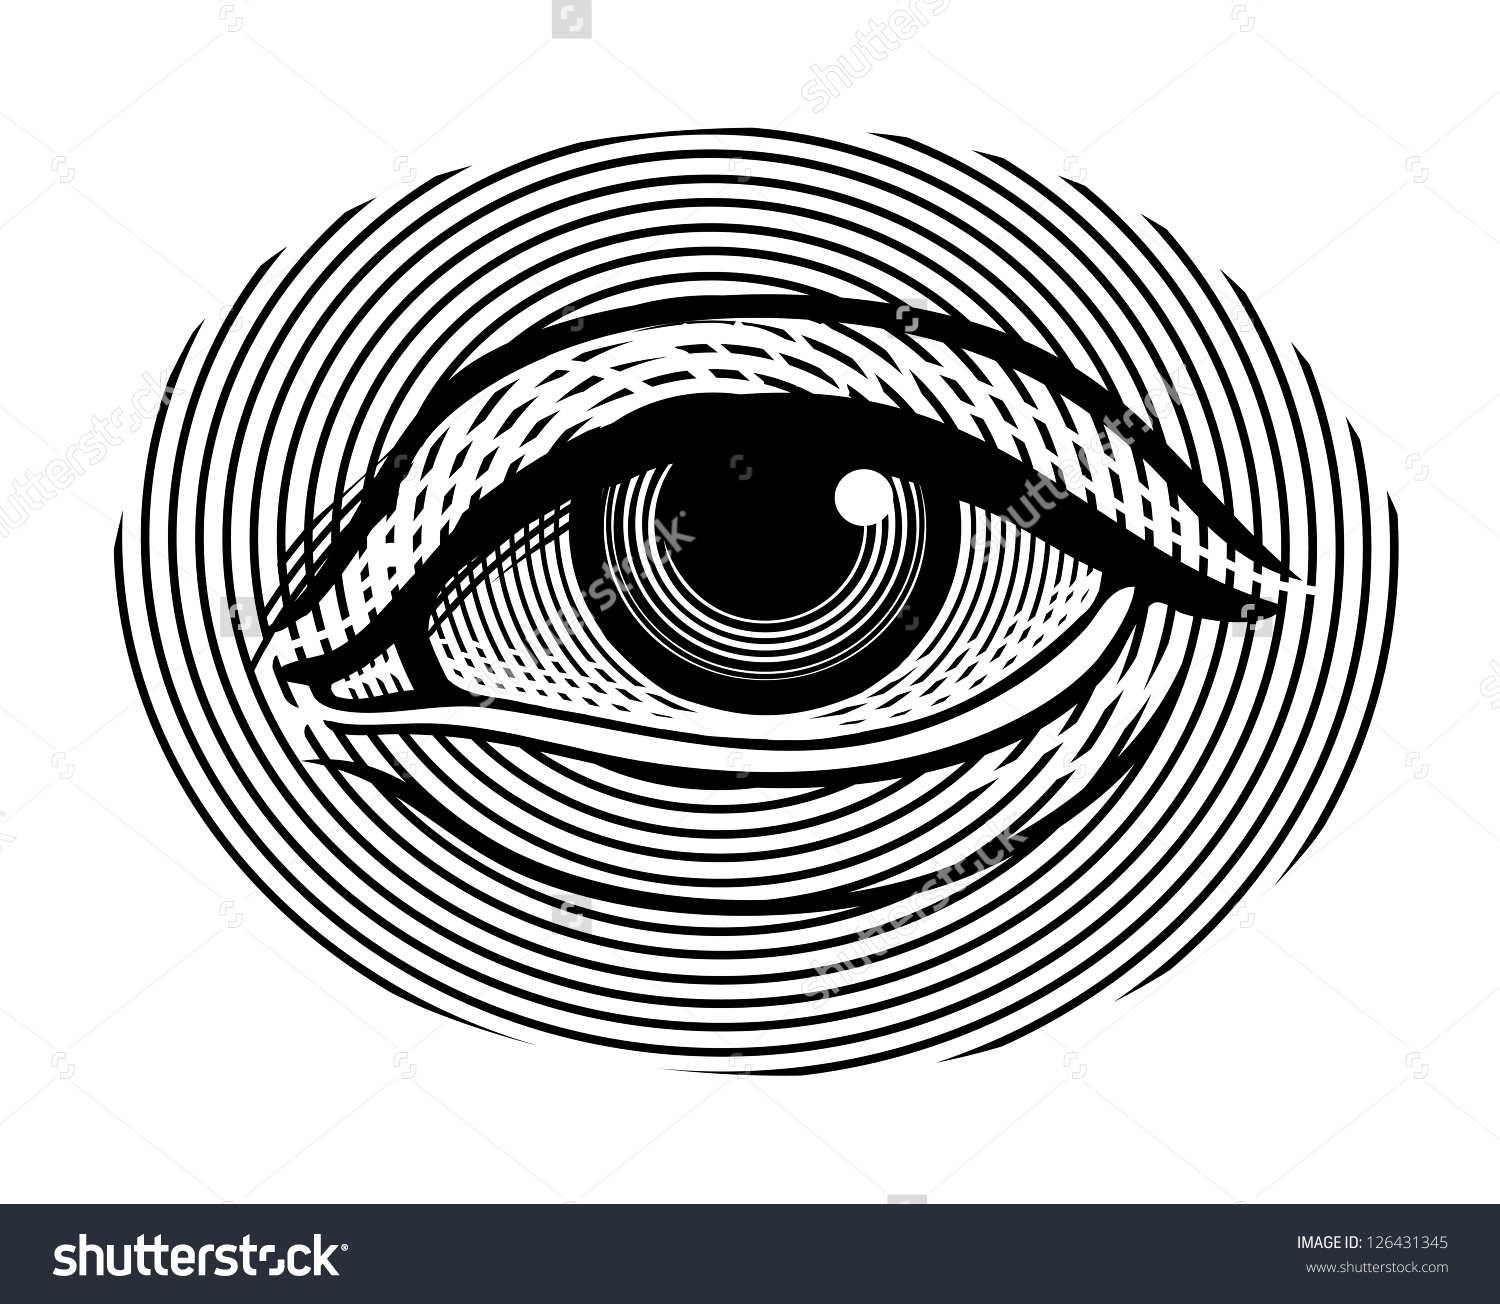 Vector Illustration Human Eye Vintage Engraved Stock Vector.